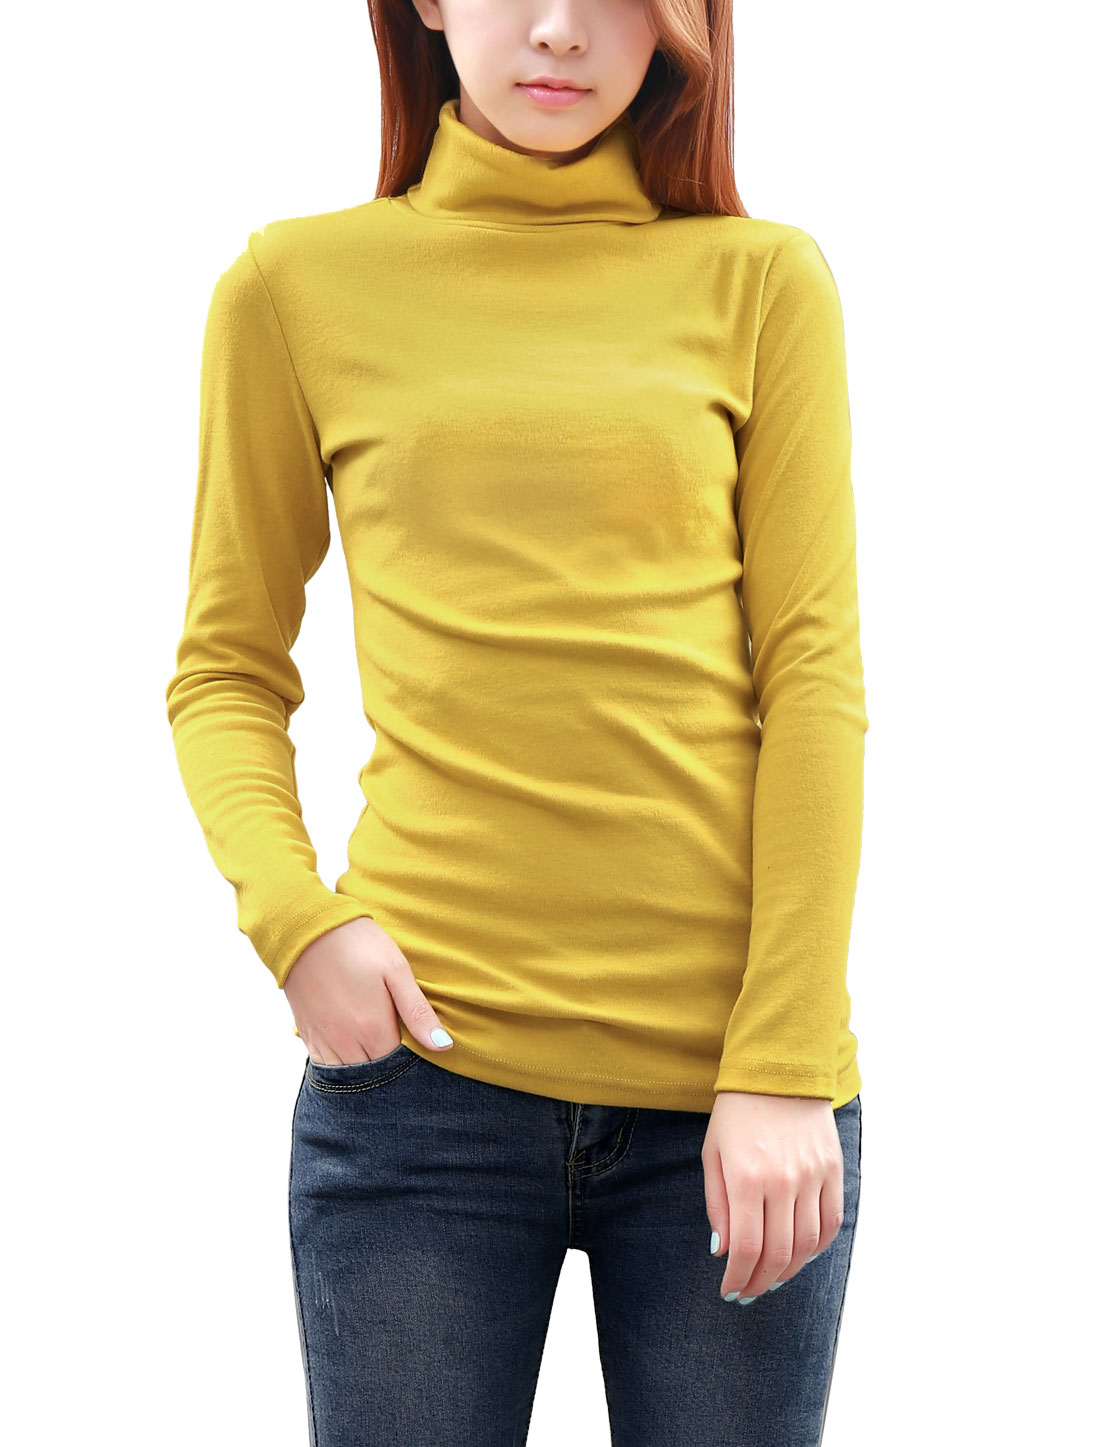 Ladies Sheathy Soft Pure Design Cutting Autumn Blouse Yellow S